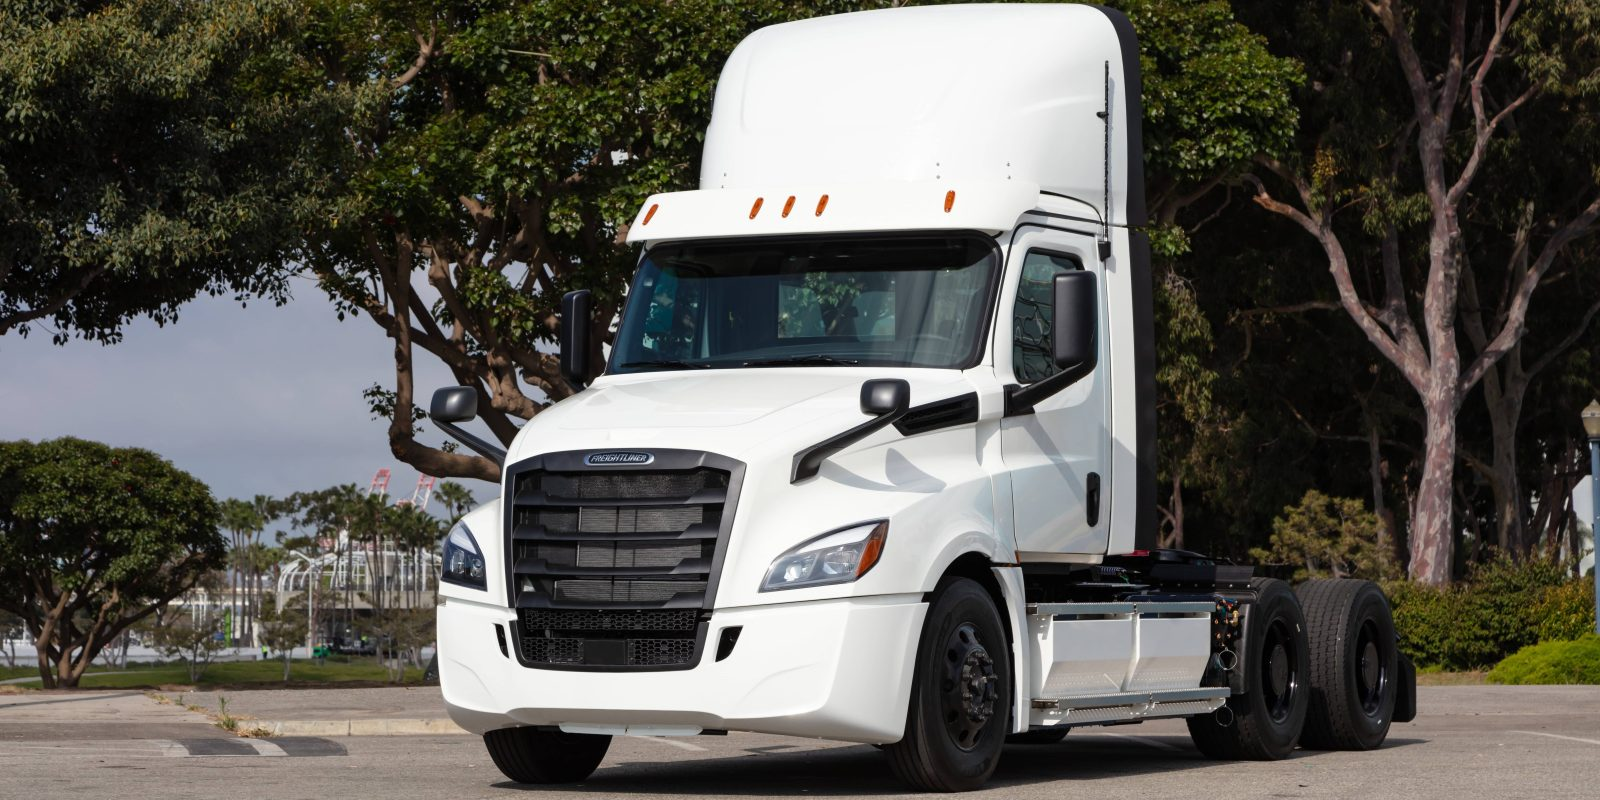 Daimler starts first Freightliner eCascadia all-electric semi truck deliveries